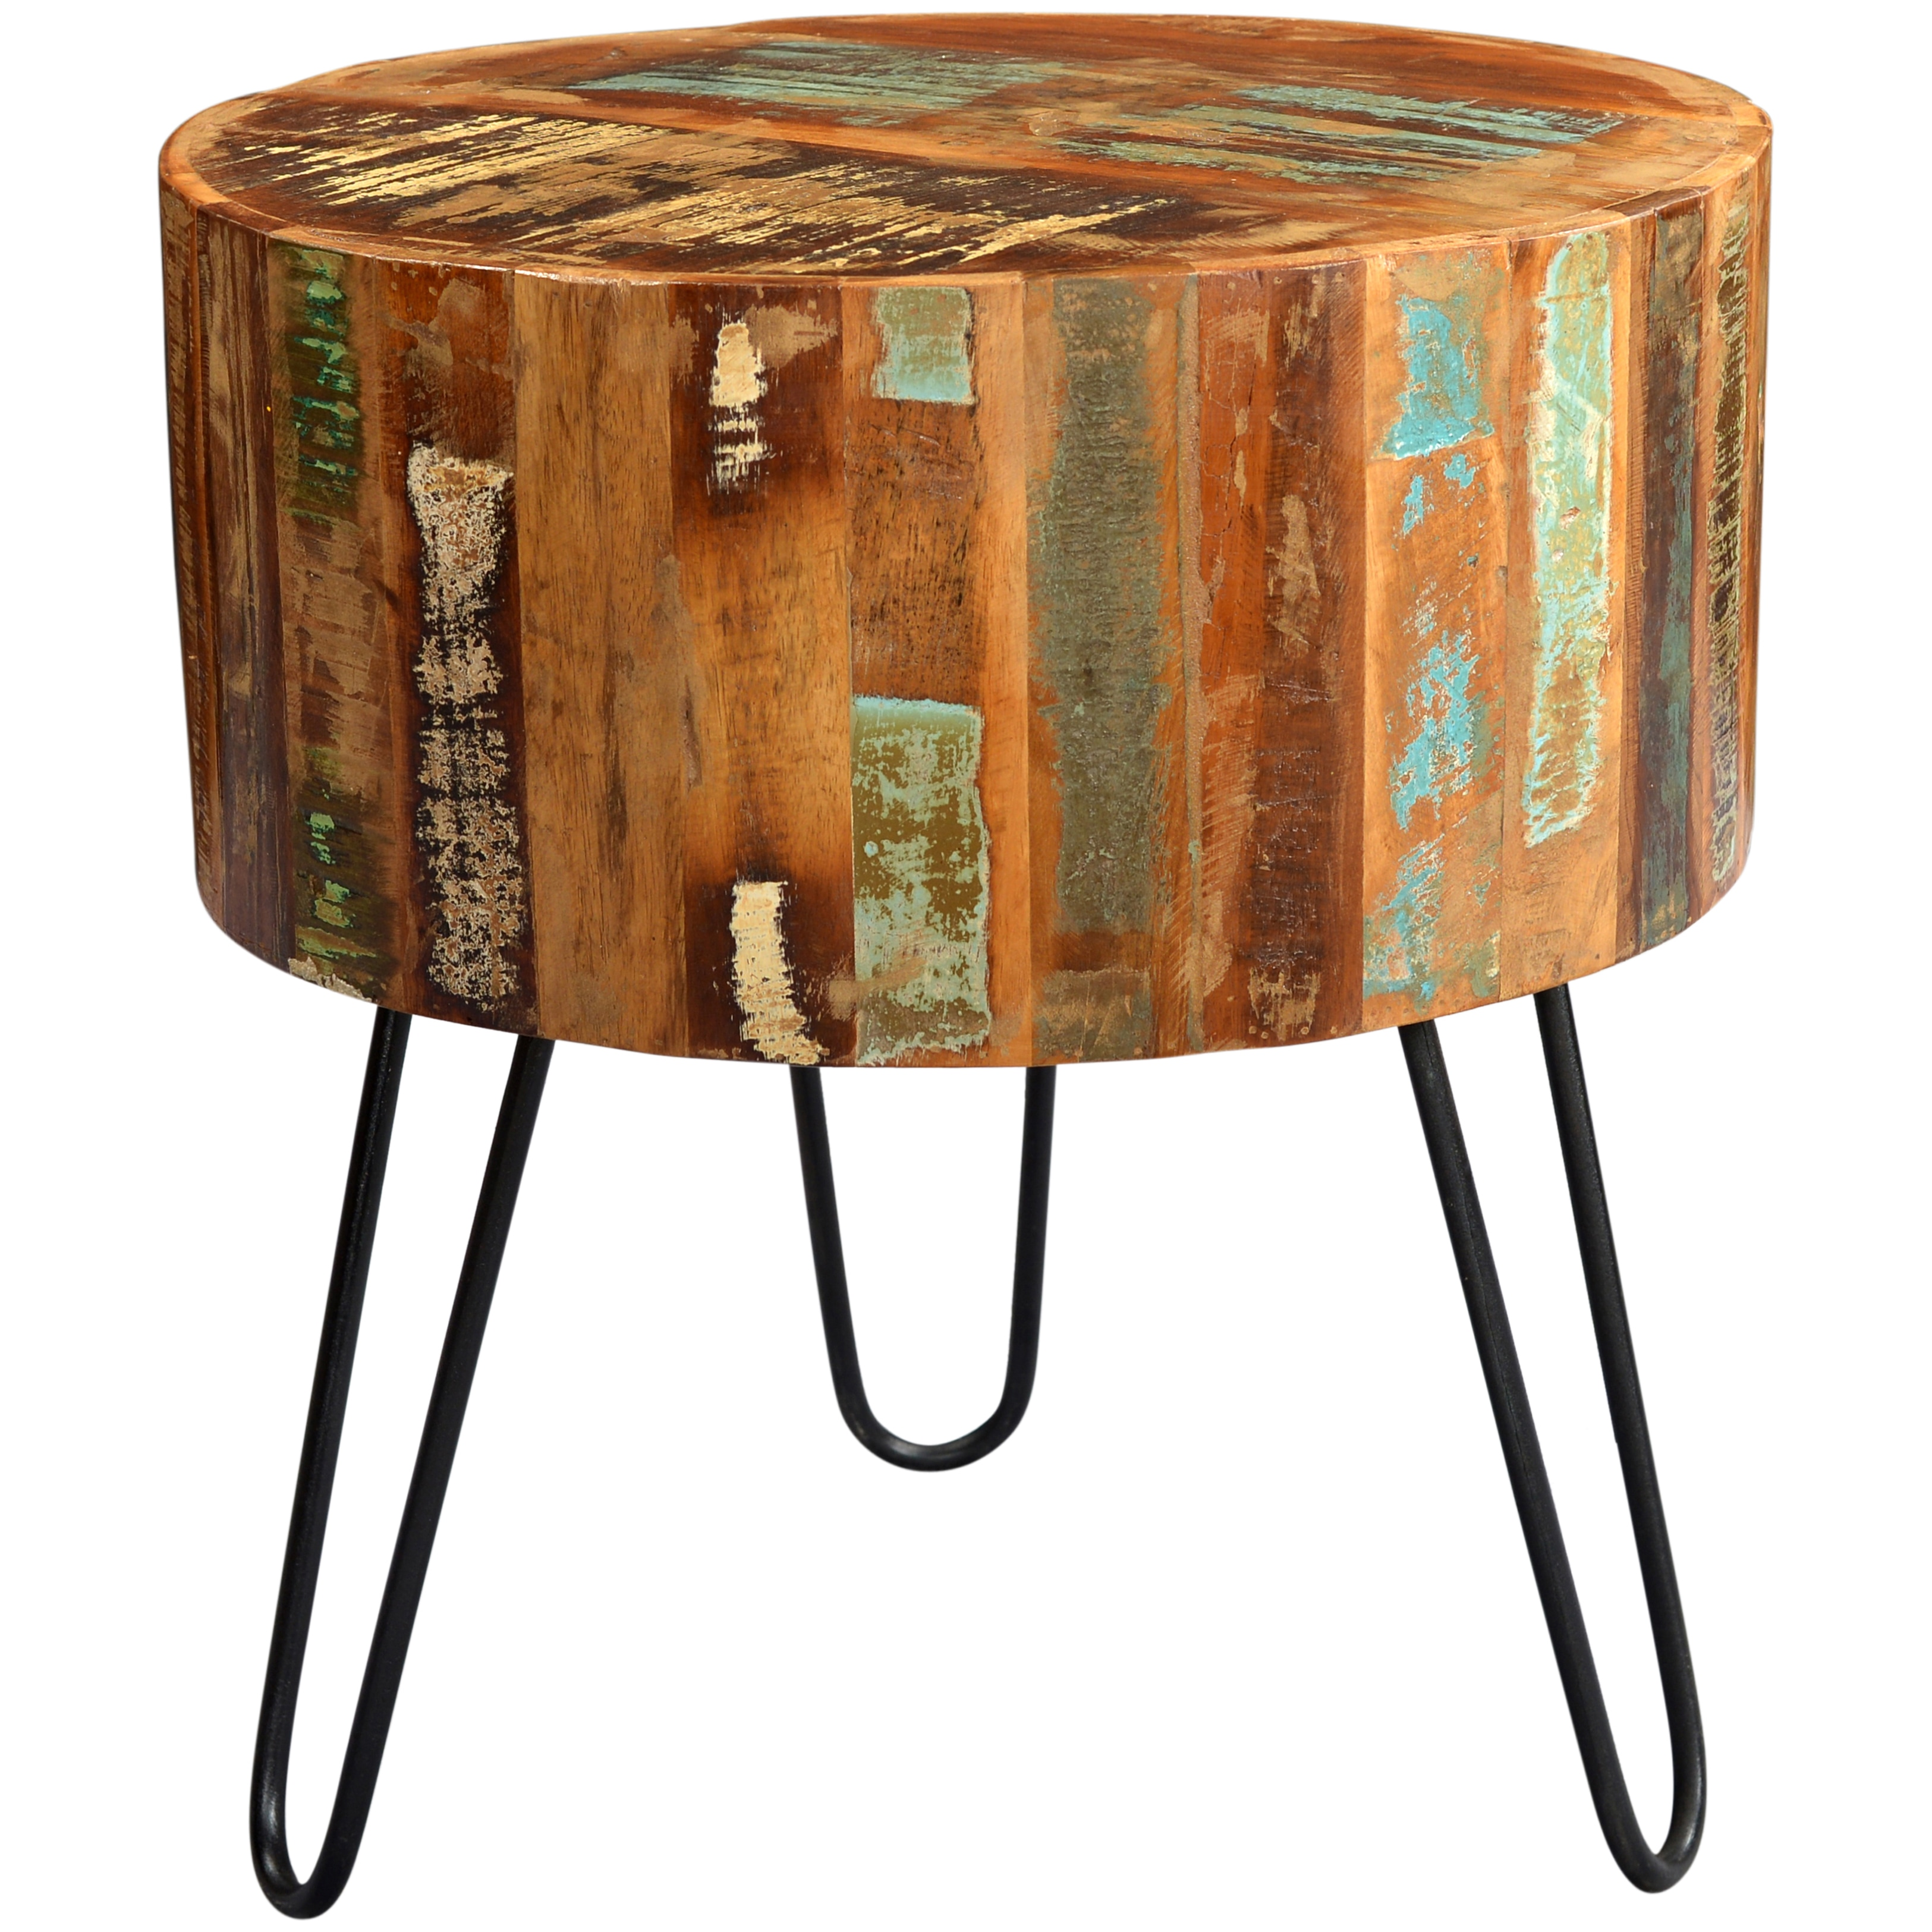 Handmade Wanderloot Tulsa Round Reclaimed Wood End Table With Hairpin Legs India 22 H X 20 W L Free Shipping Today 11820479